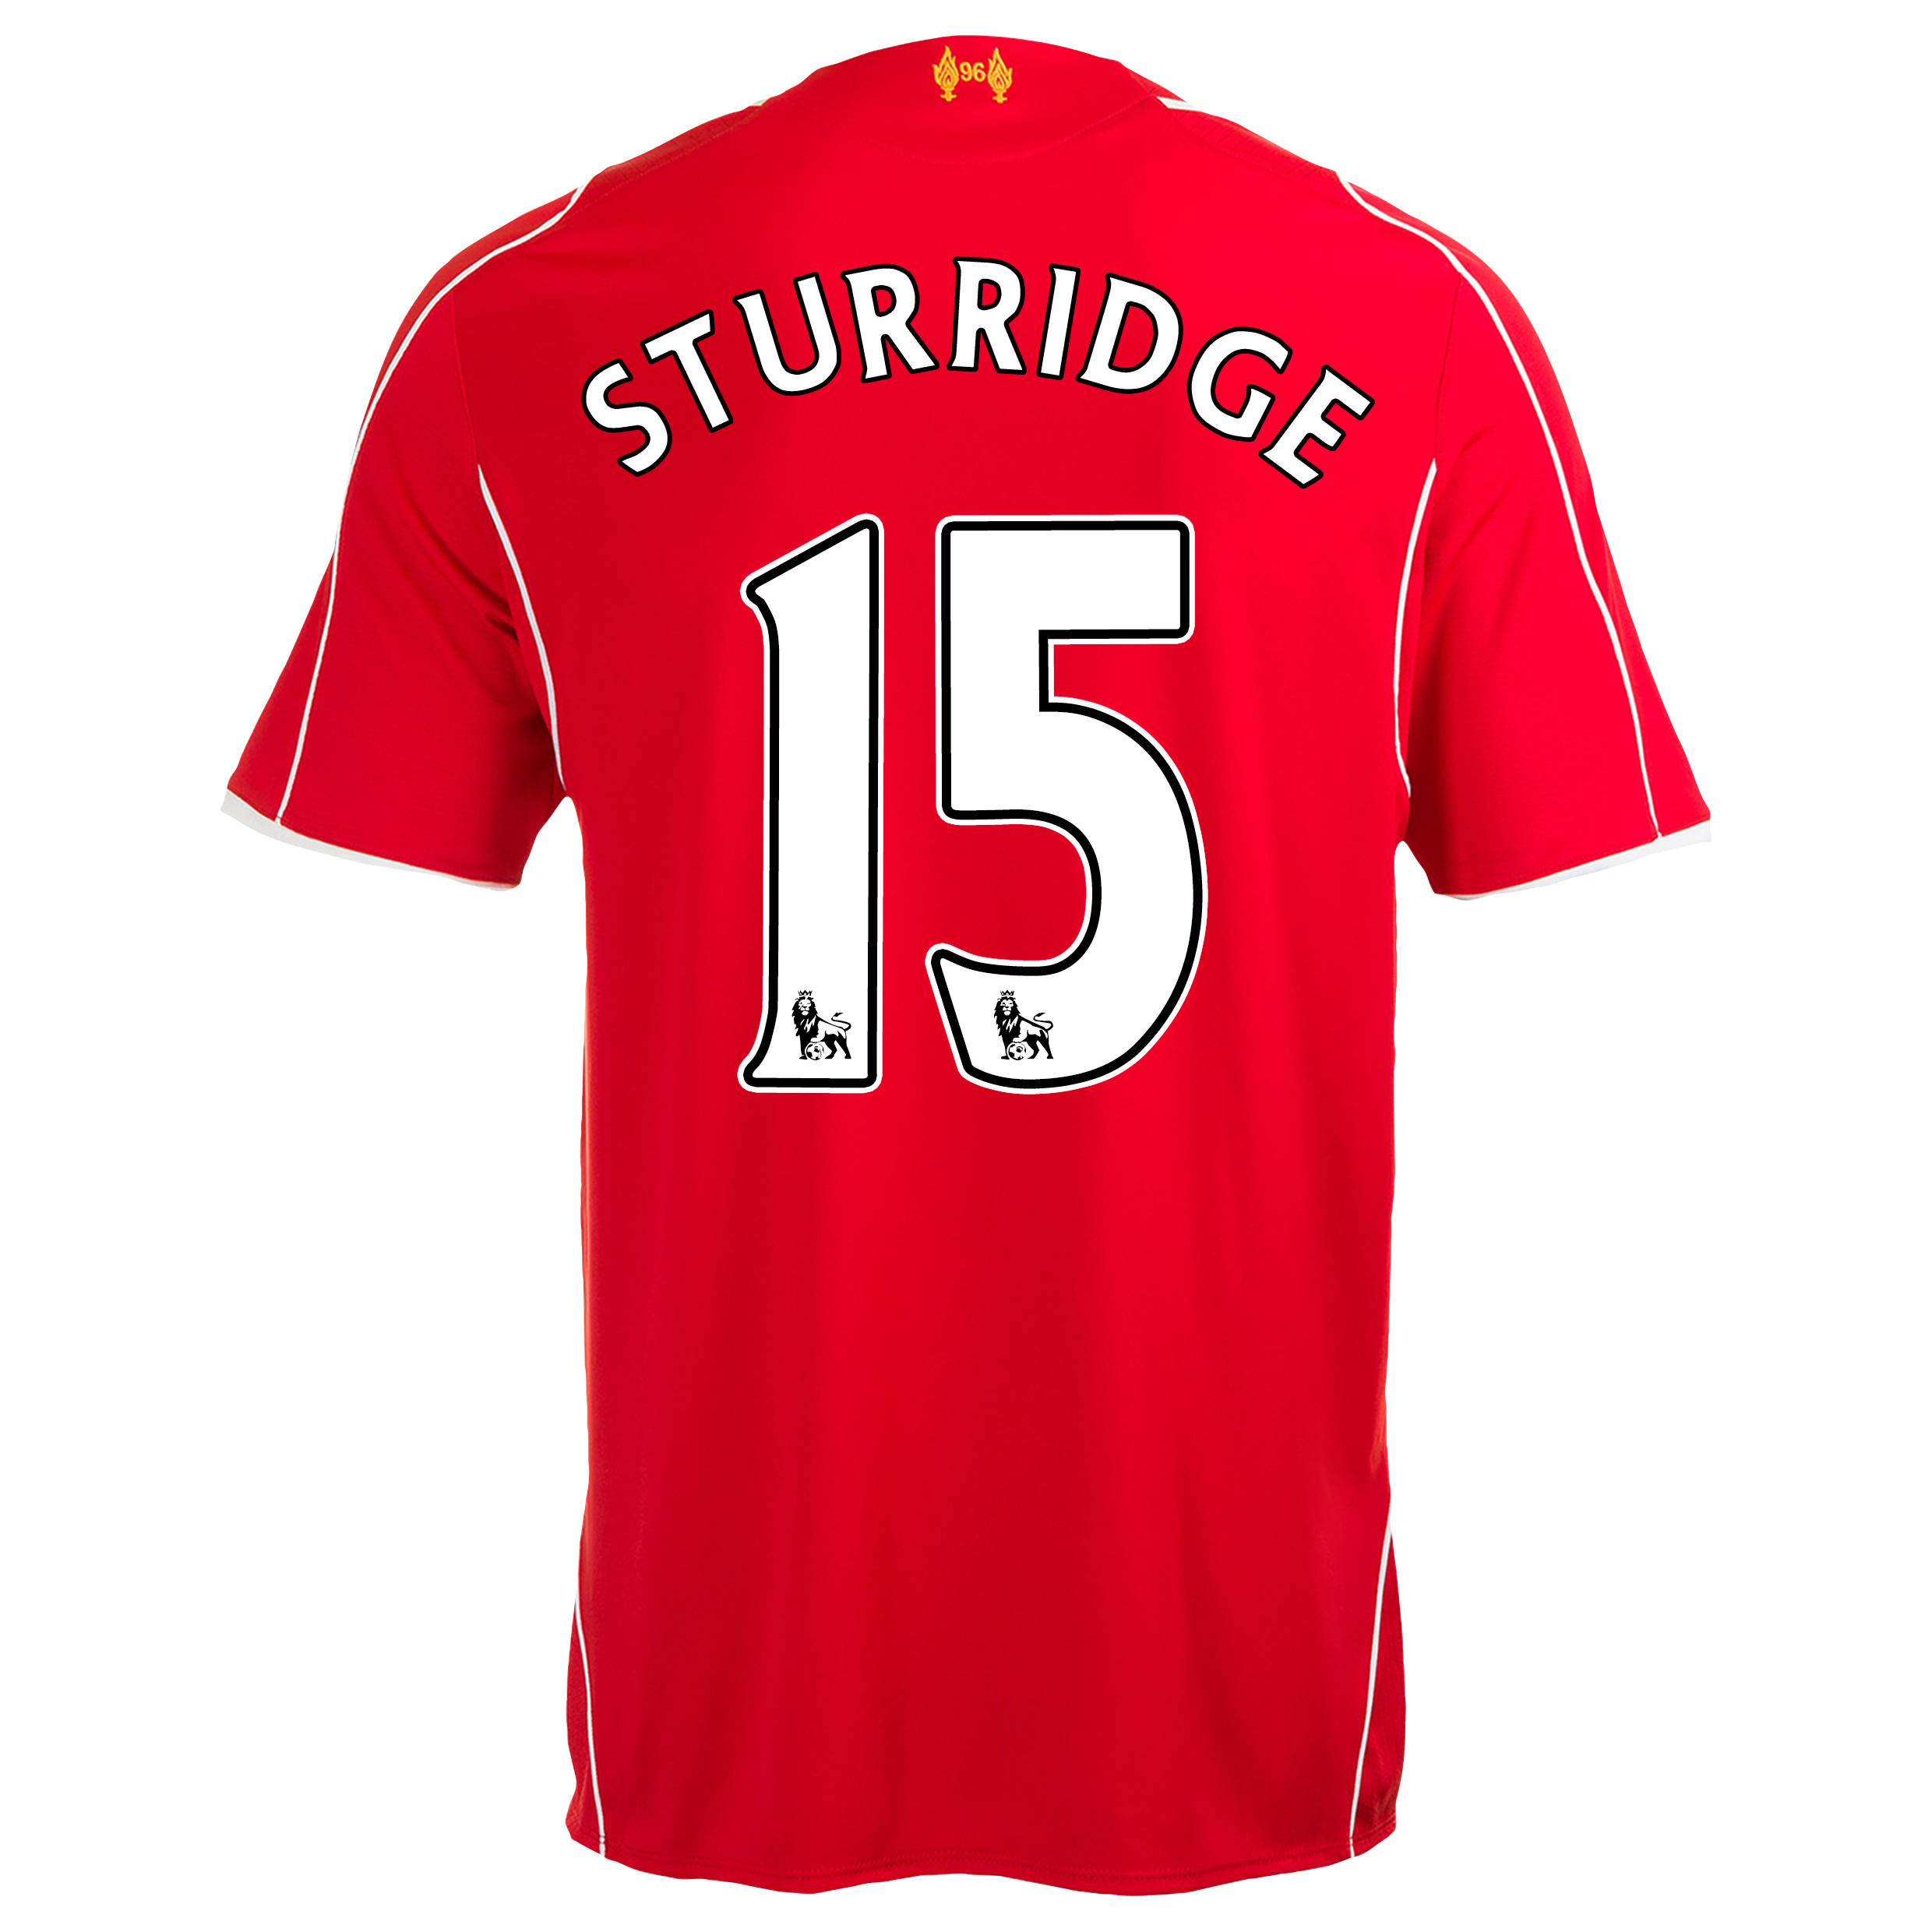 Liverpool Home Shirt 2014/15 Kids Red with Sturridge 15 printing